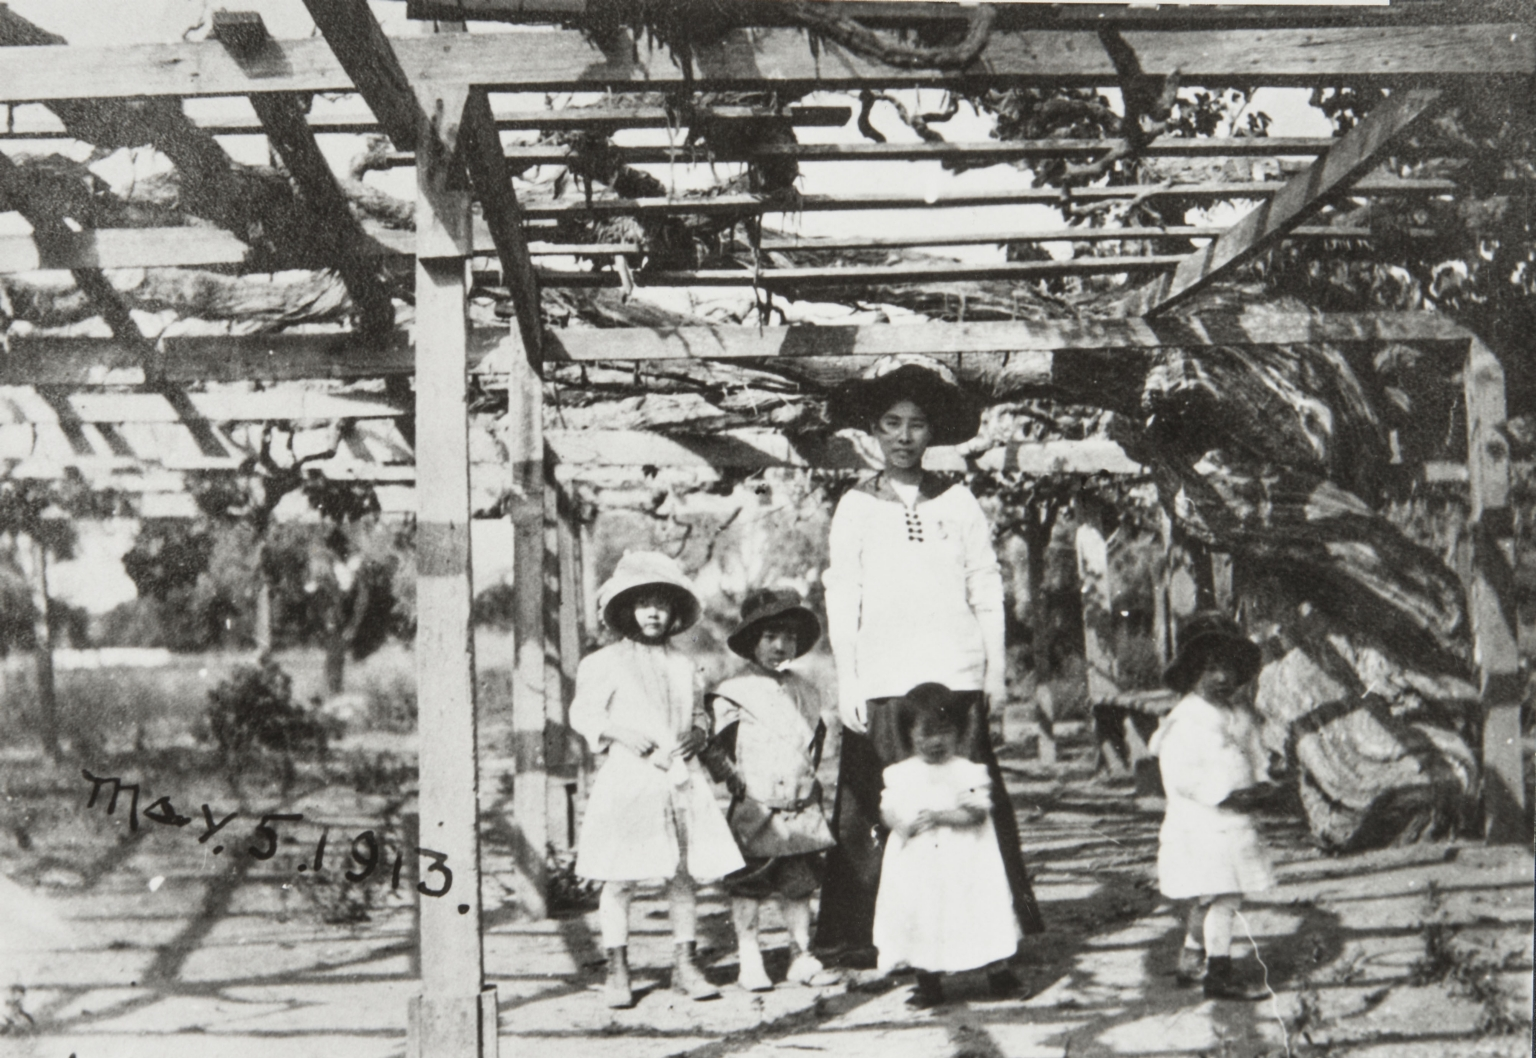 Elizabeth Ezaki Brown, William Ezaki, Ruth Ezaki and James Ezaki with the mother under the Carpinteria grapevine, the largest grapevine in the world. Carpinteria : 1913.